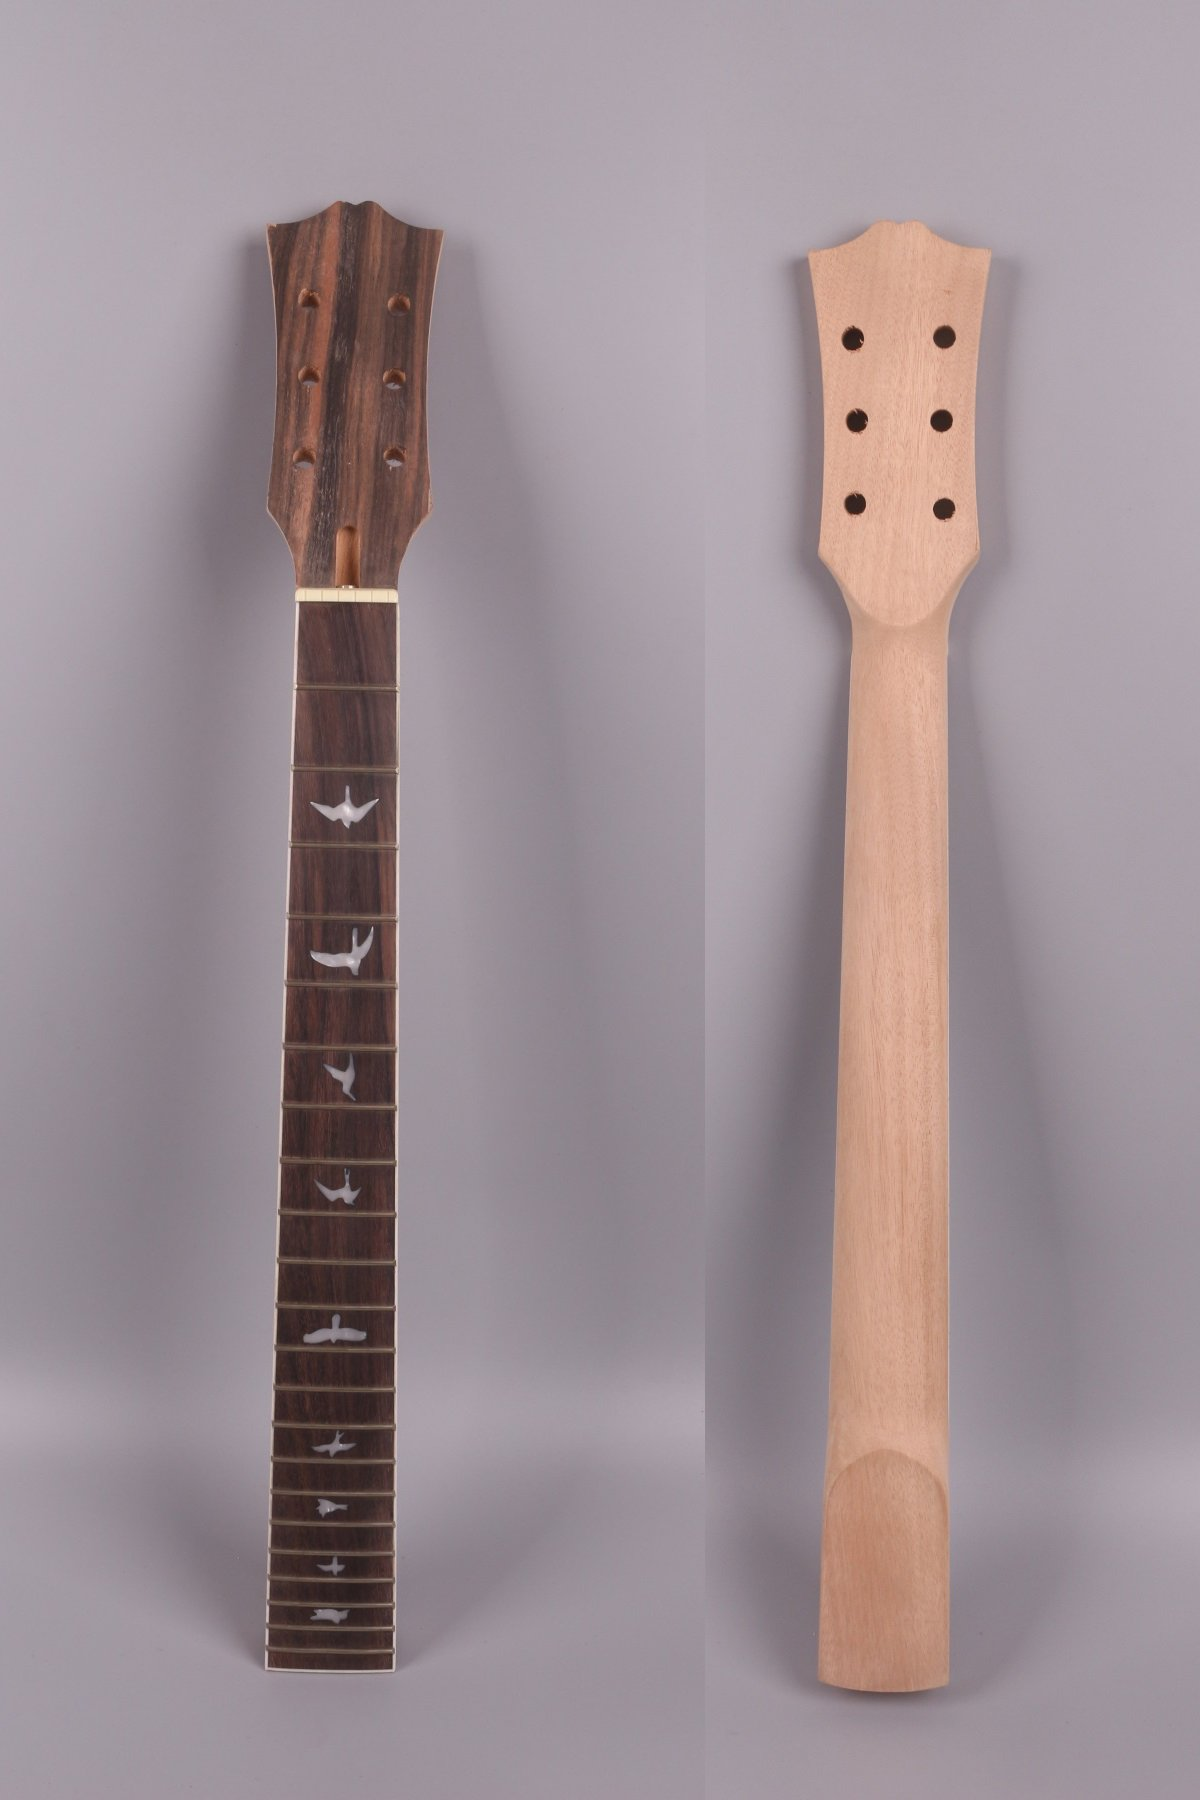 electric guitar neck unfinished 22 fret 24.75 inch Mahogany rosewood Fretboard Bolt LP electric guitar Bird inlay